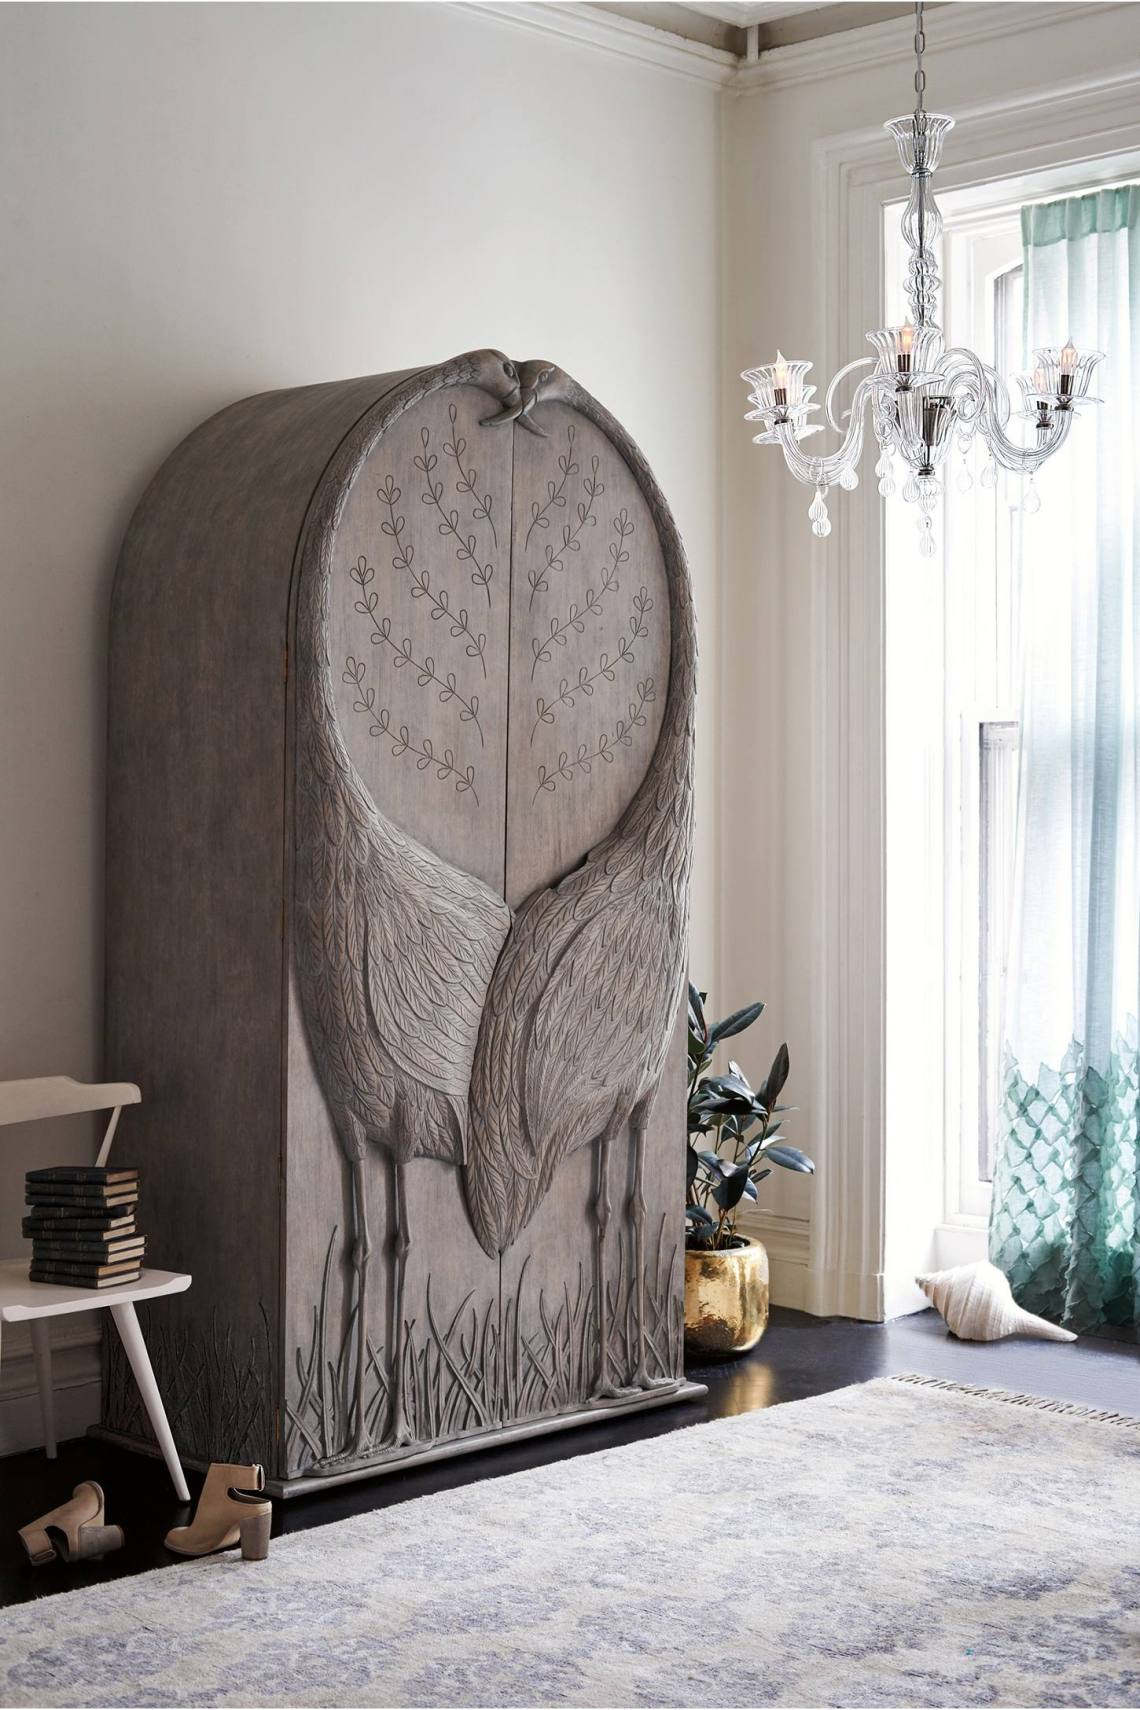 Apartment Anthropologie Armoire - anthrohome8_Simple Apartment Anthropologie Armoire - anthrohome8  HD_287059.jpg